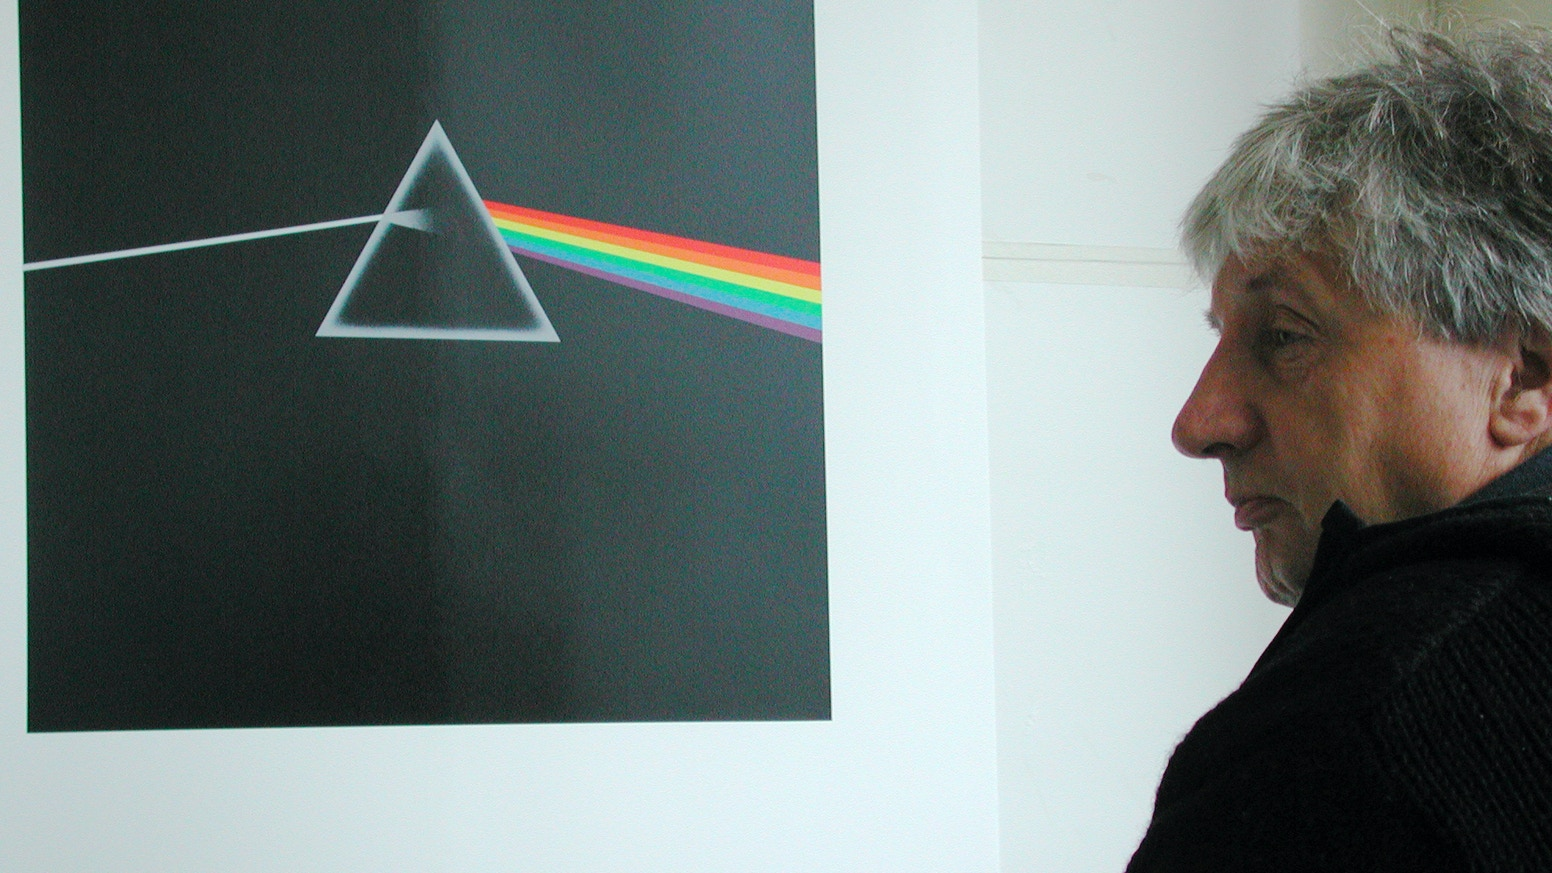 Real? Surreal? Iconic? The album art of Storm Thorgerson is so far deeply embedded in our psyche it's hard to believe it all came from one mind...